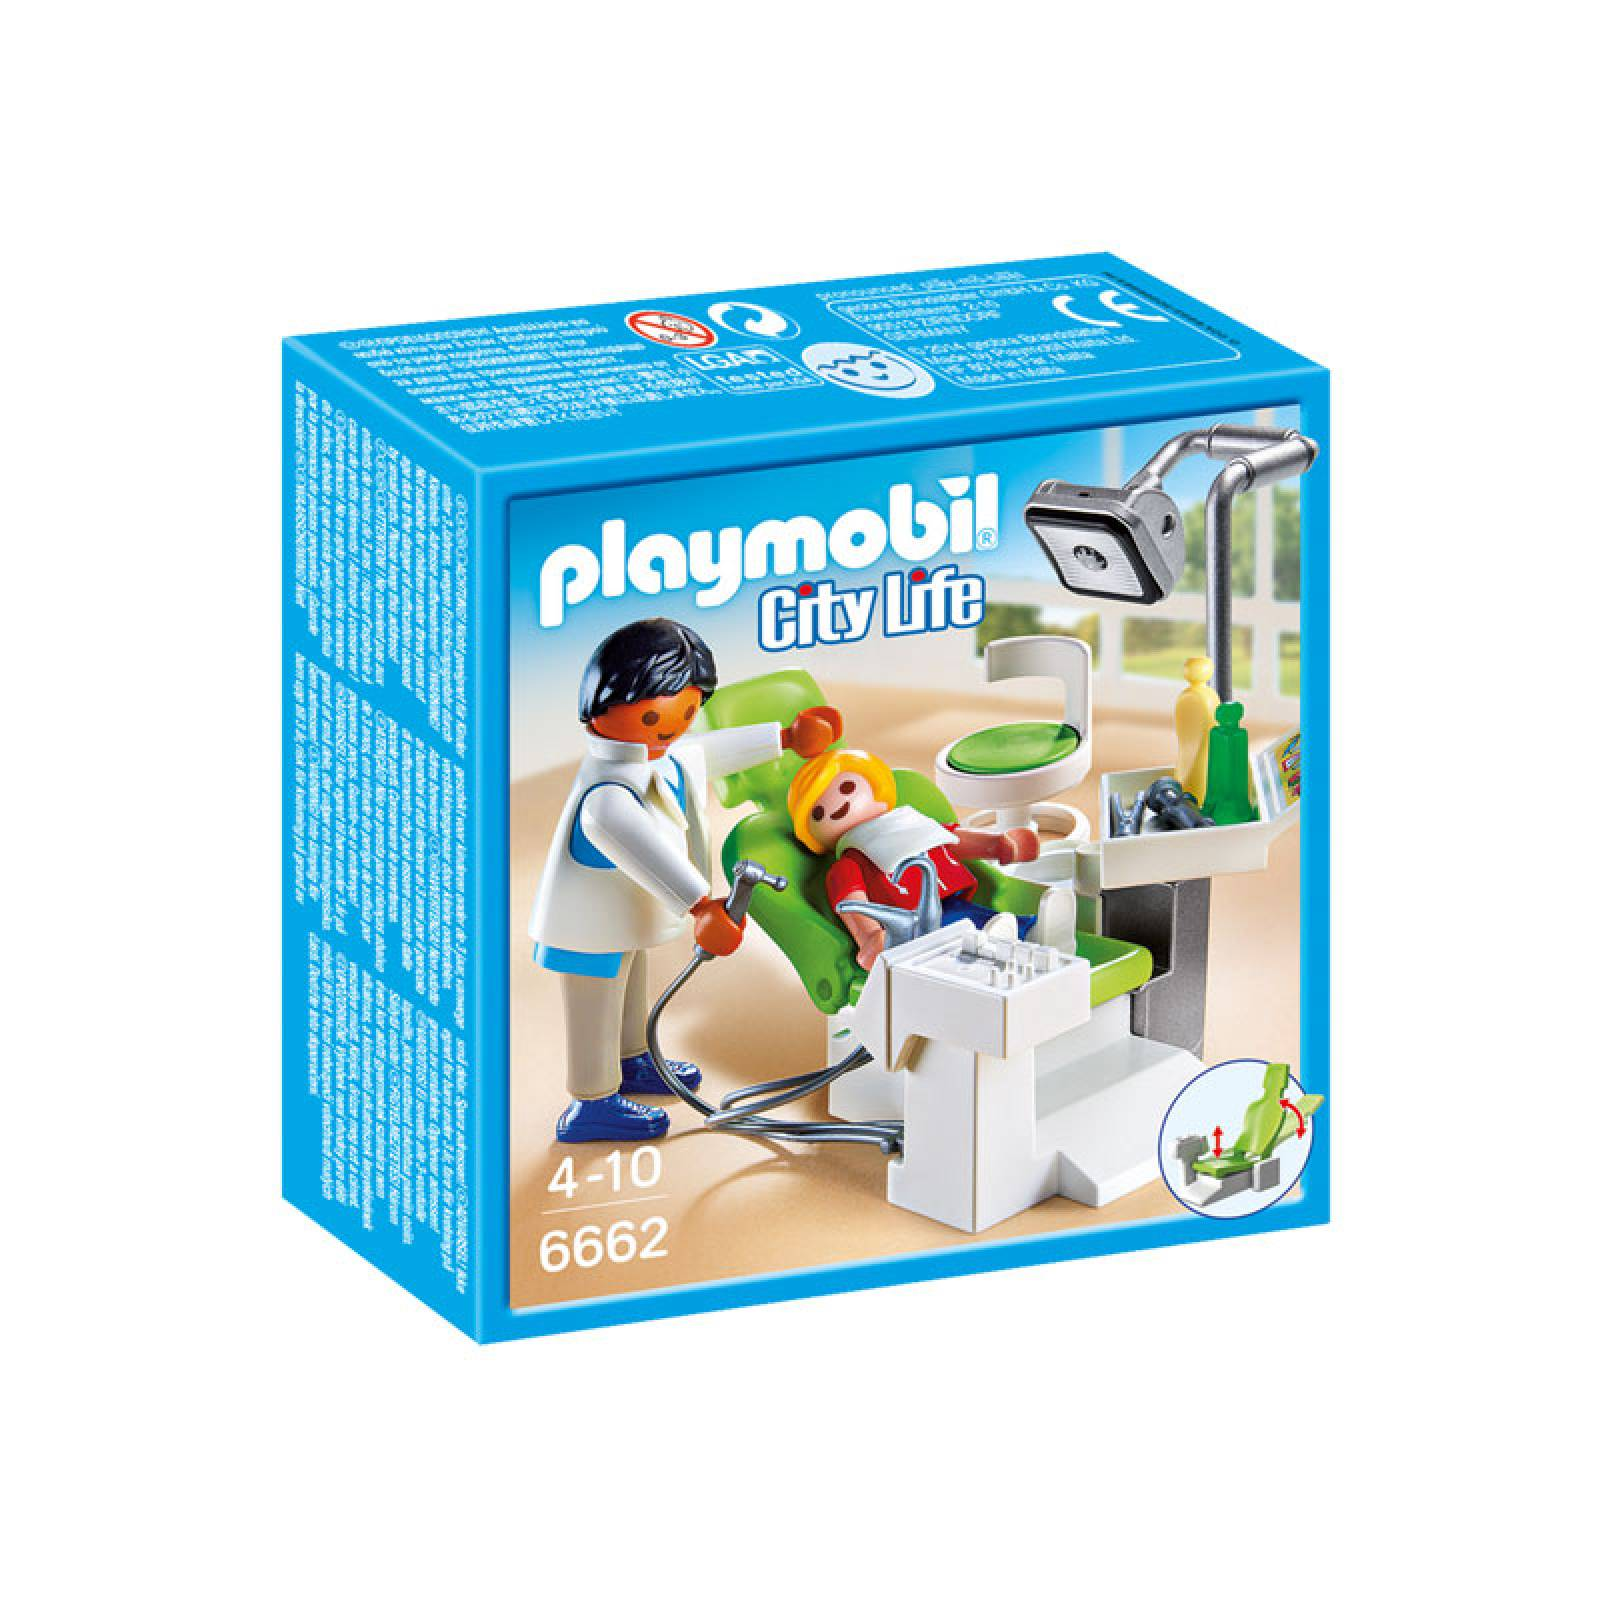 Dentist With Patient City Life Playmobil 6662 4-10yrs thumbnails